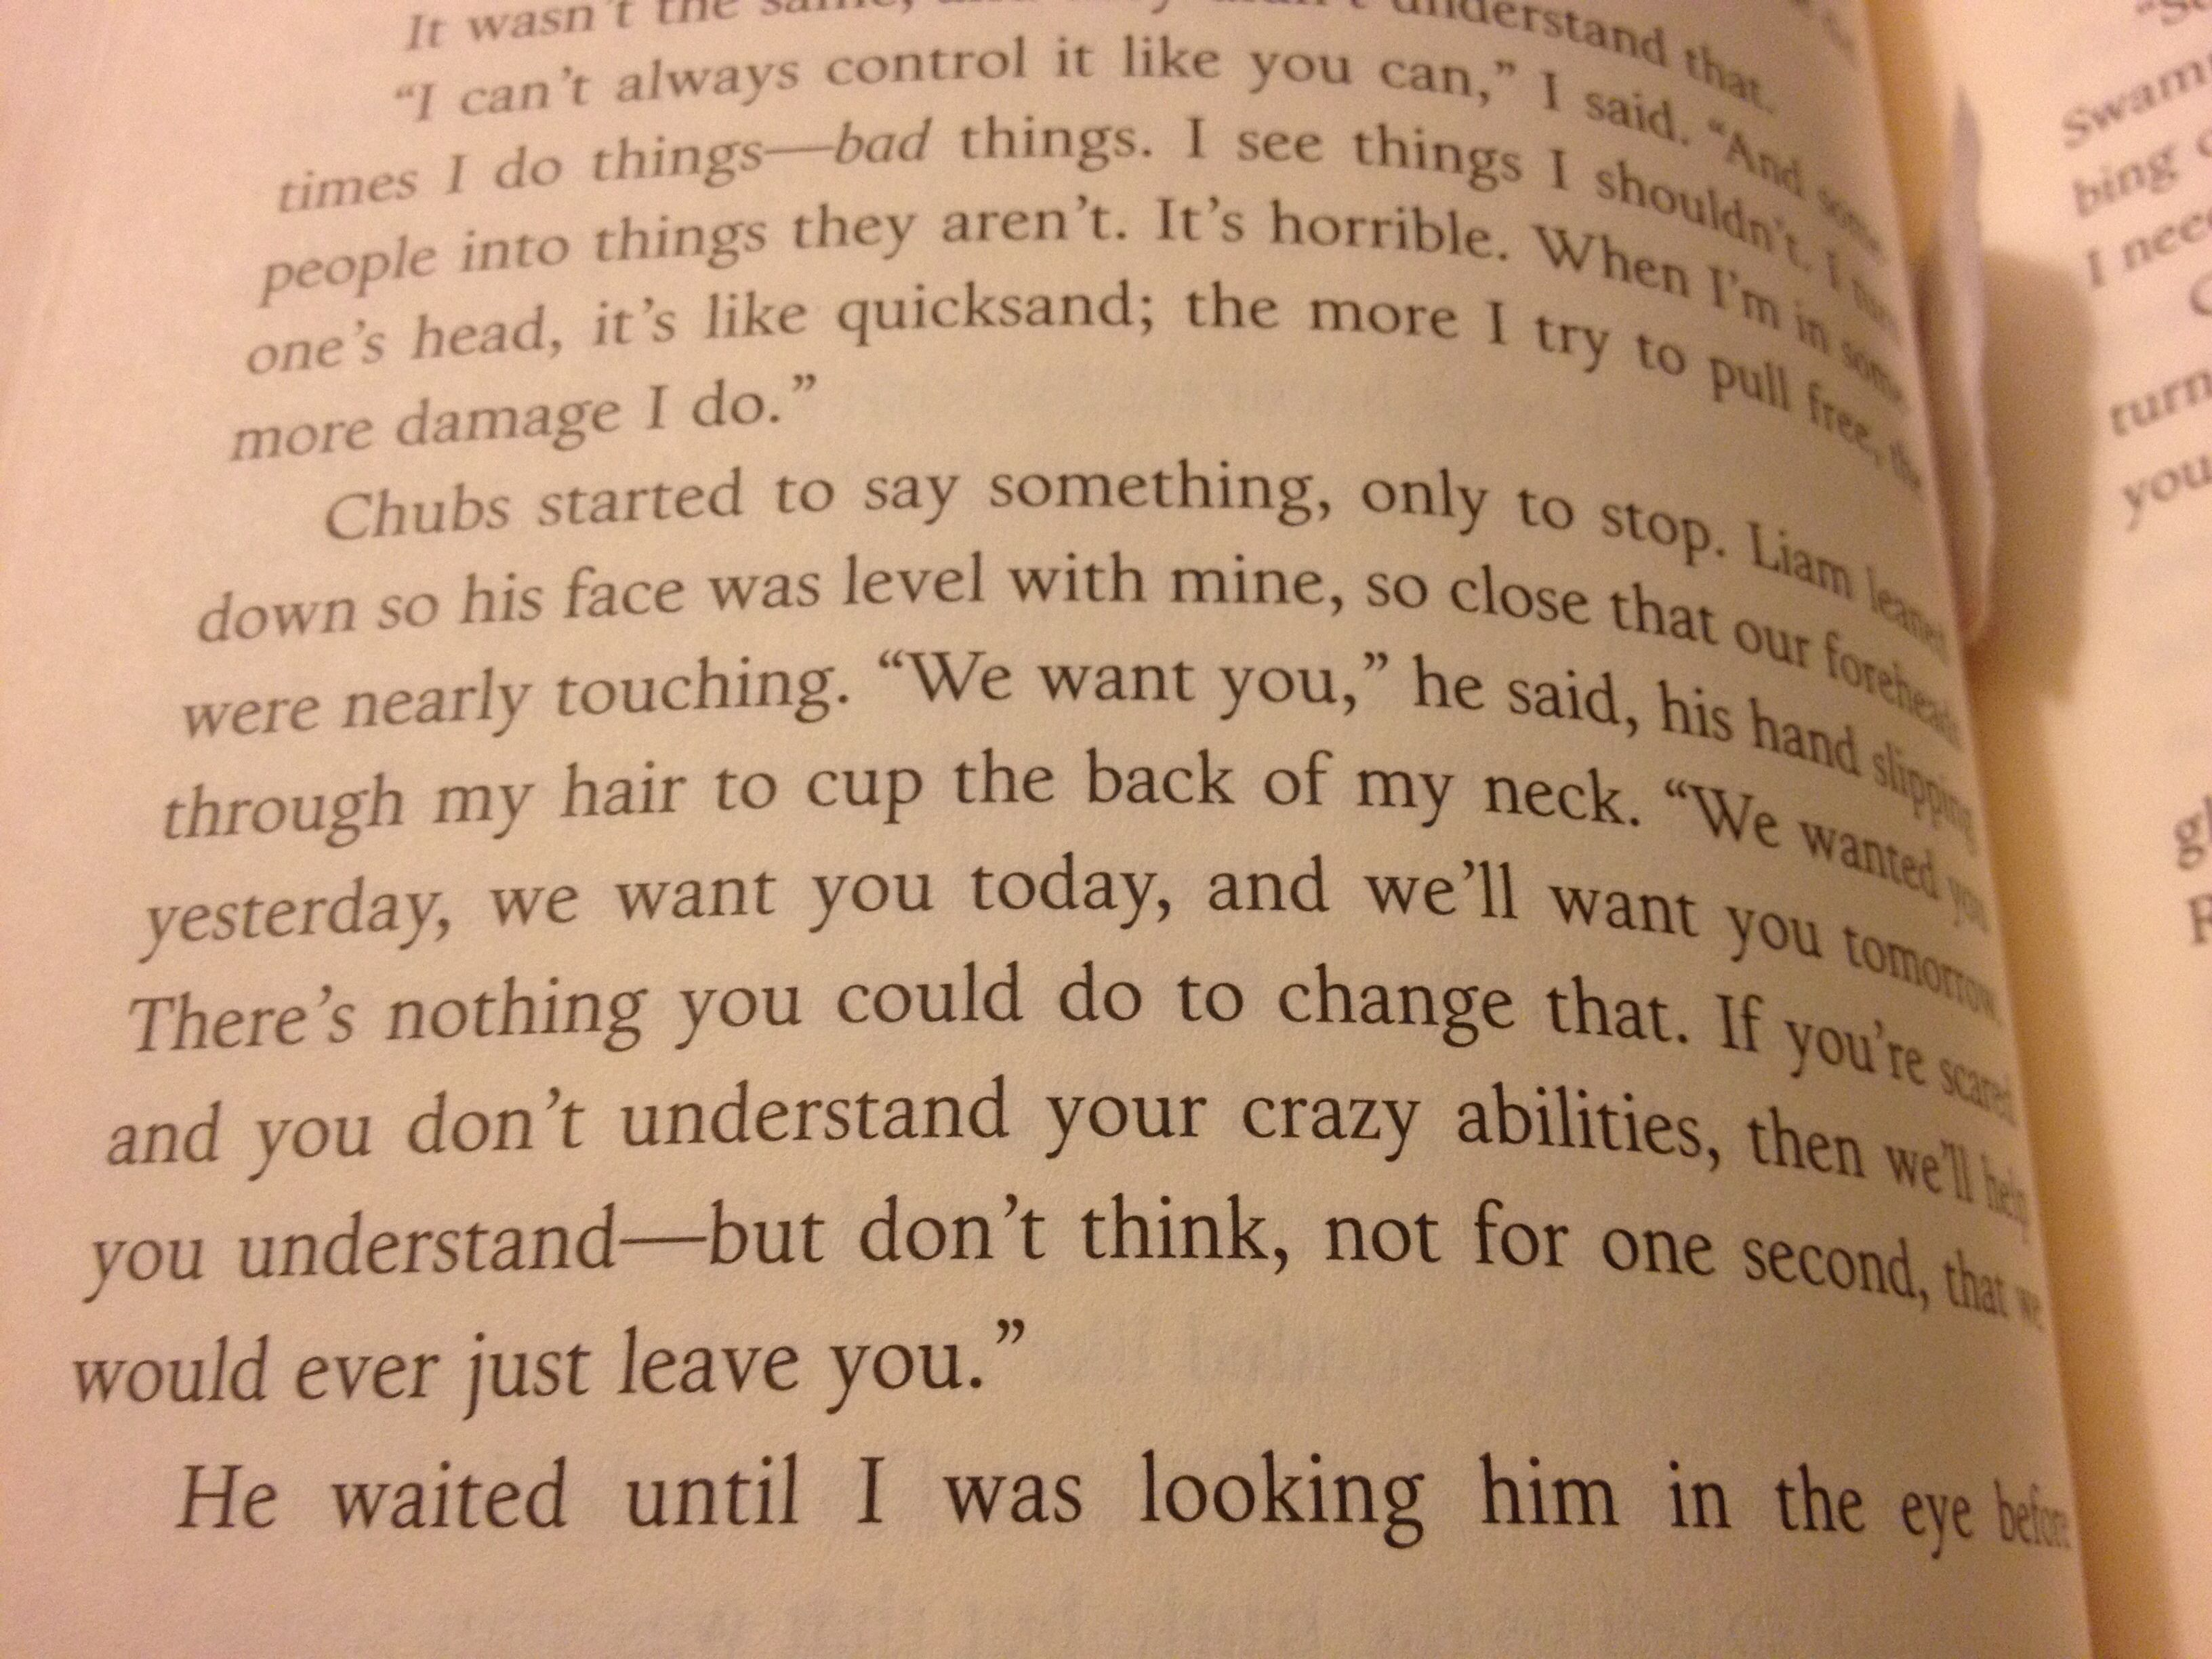 Just Reading The Darkest Minds And Picked Up This Quotes<<Love